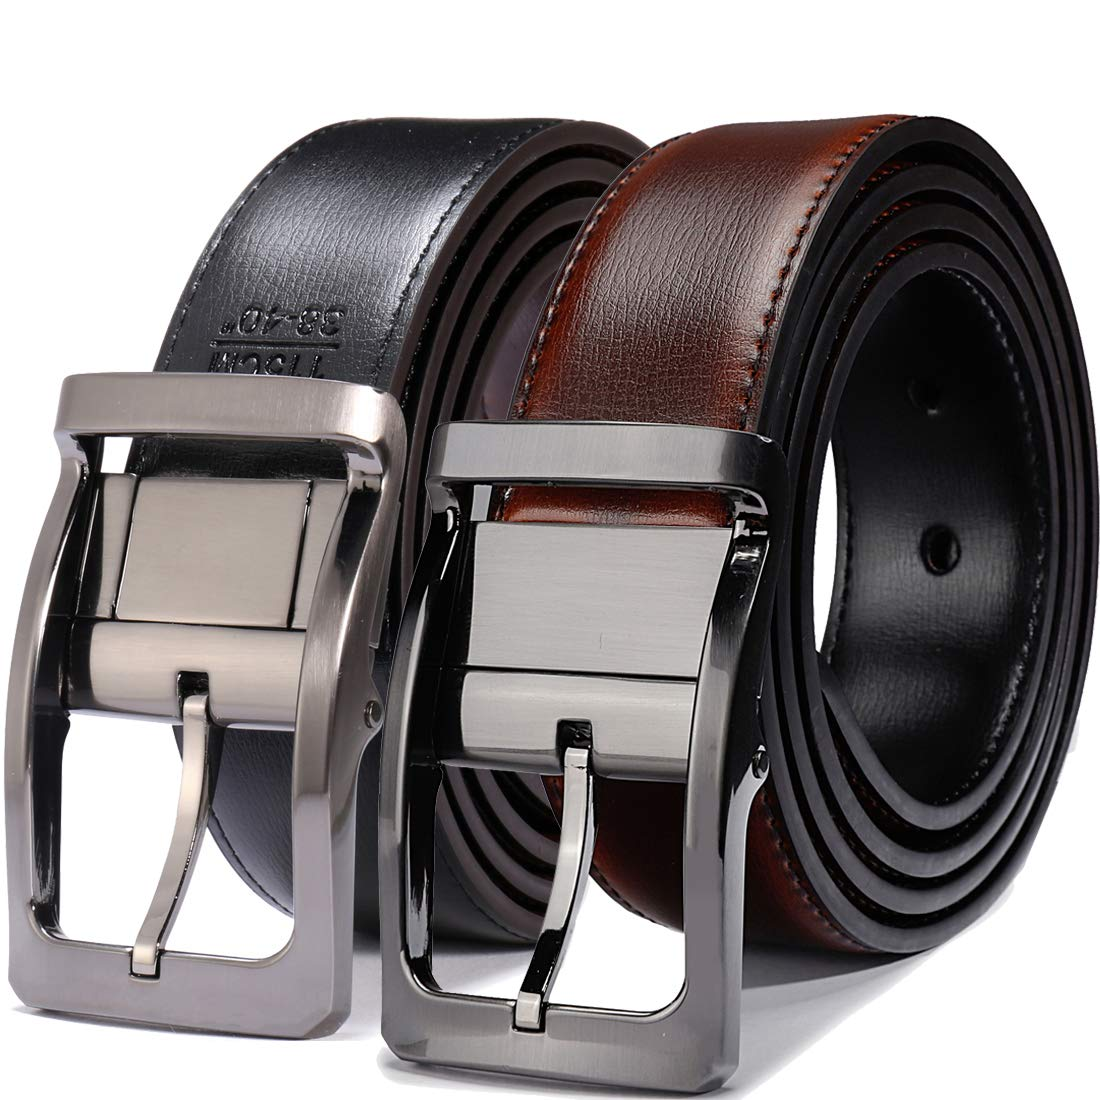 Belts for Men Reversible Leather 1.25'' Waist Strap Fashion Dress Buckle Beltox (Rectangle Rotated Buckle with Burnt Umber/Black Belt, 36-38)